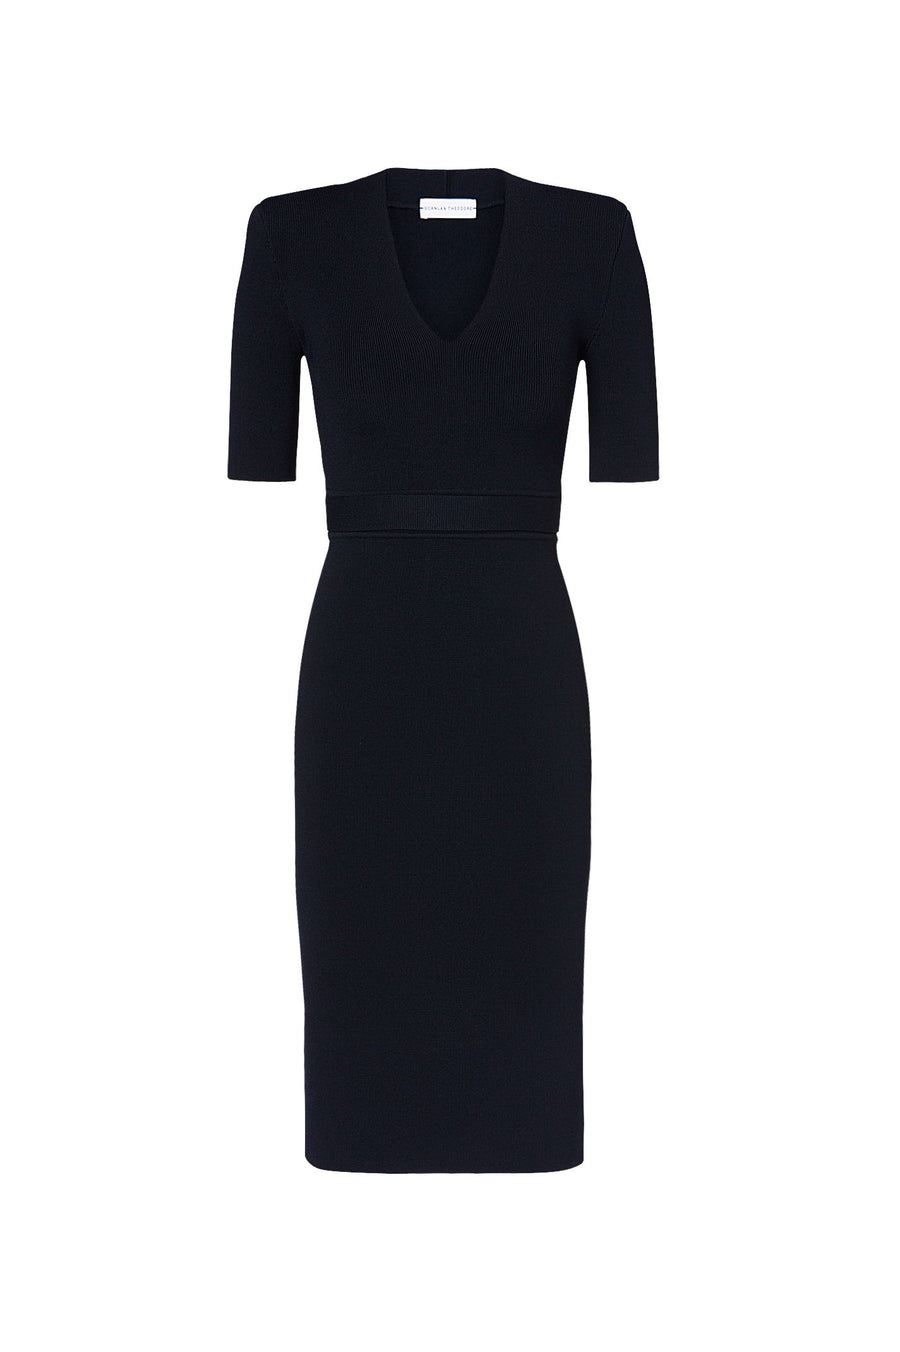 CREPE KNIT V NECK DRESS NAVY